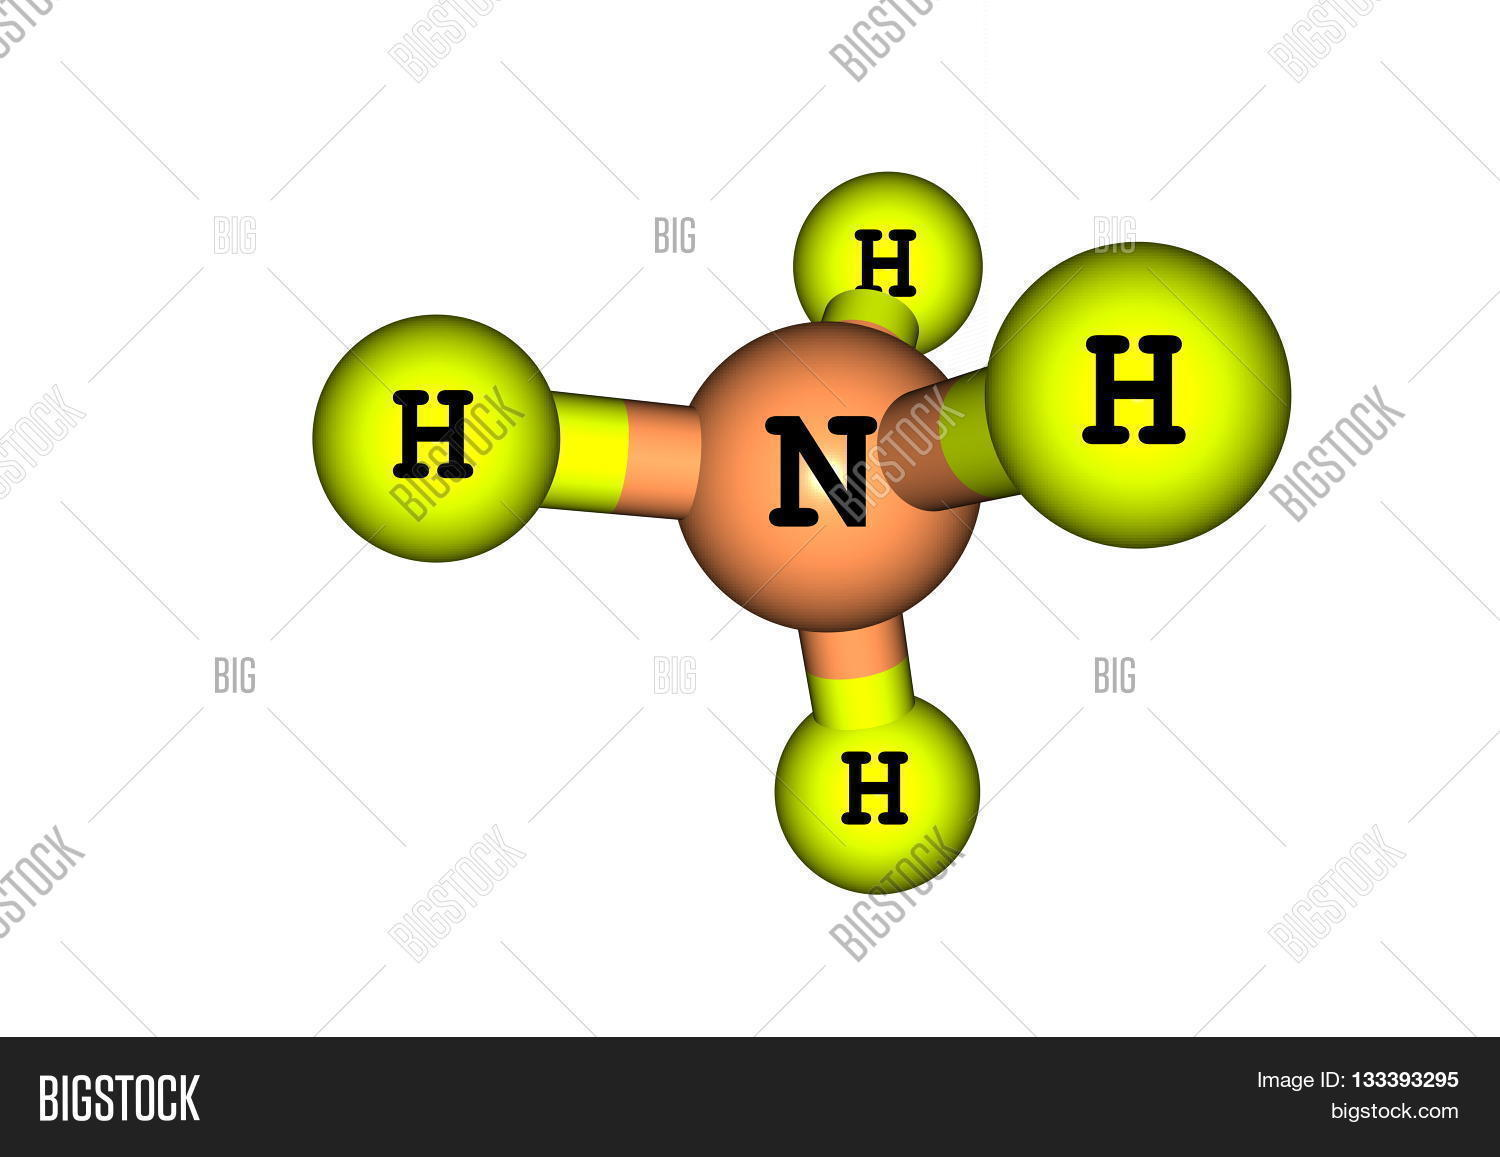 Ammonium Cation Image Photo Free Trial Bigstock